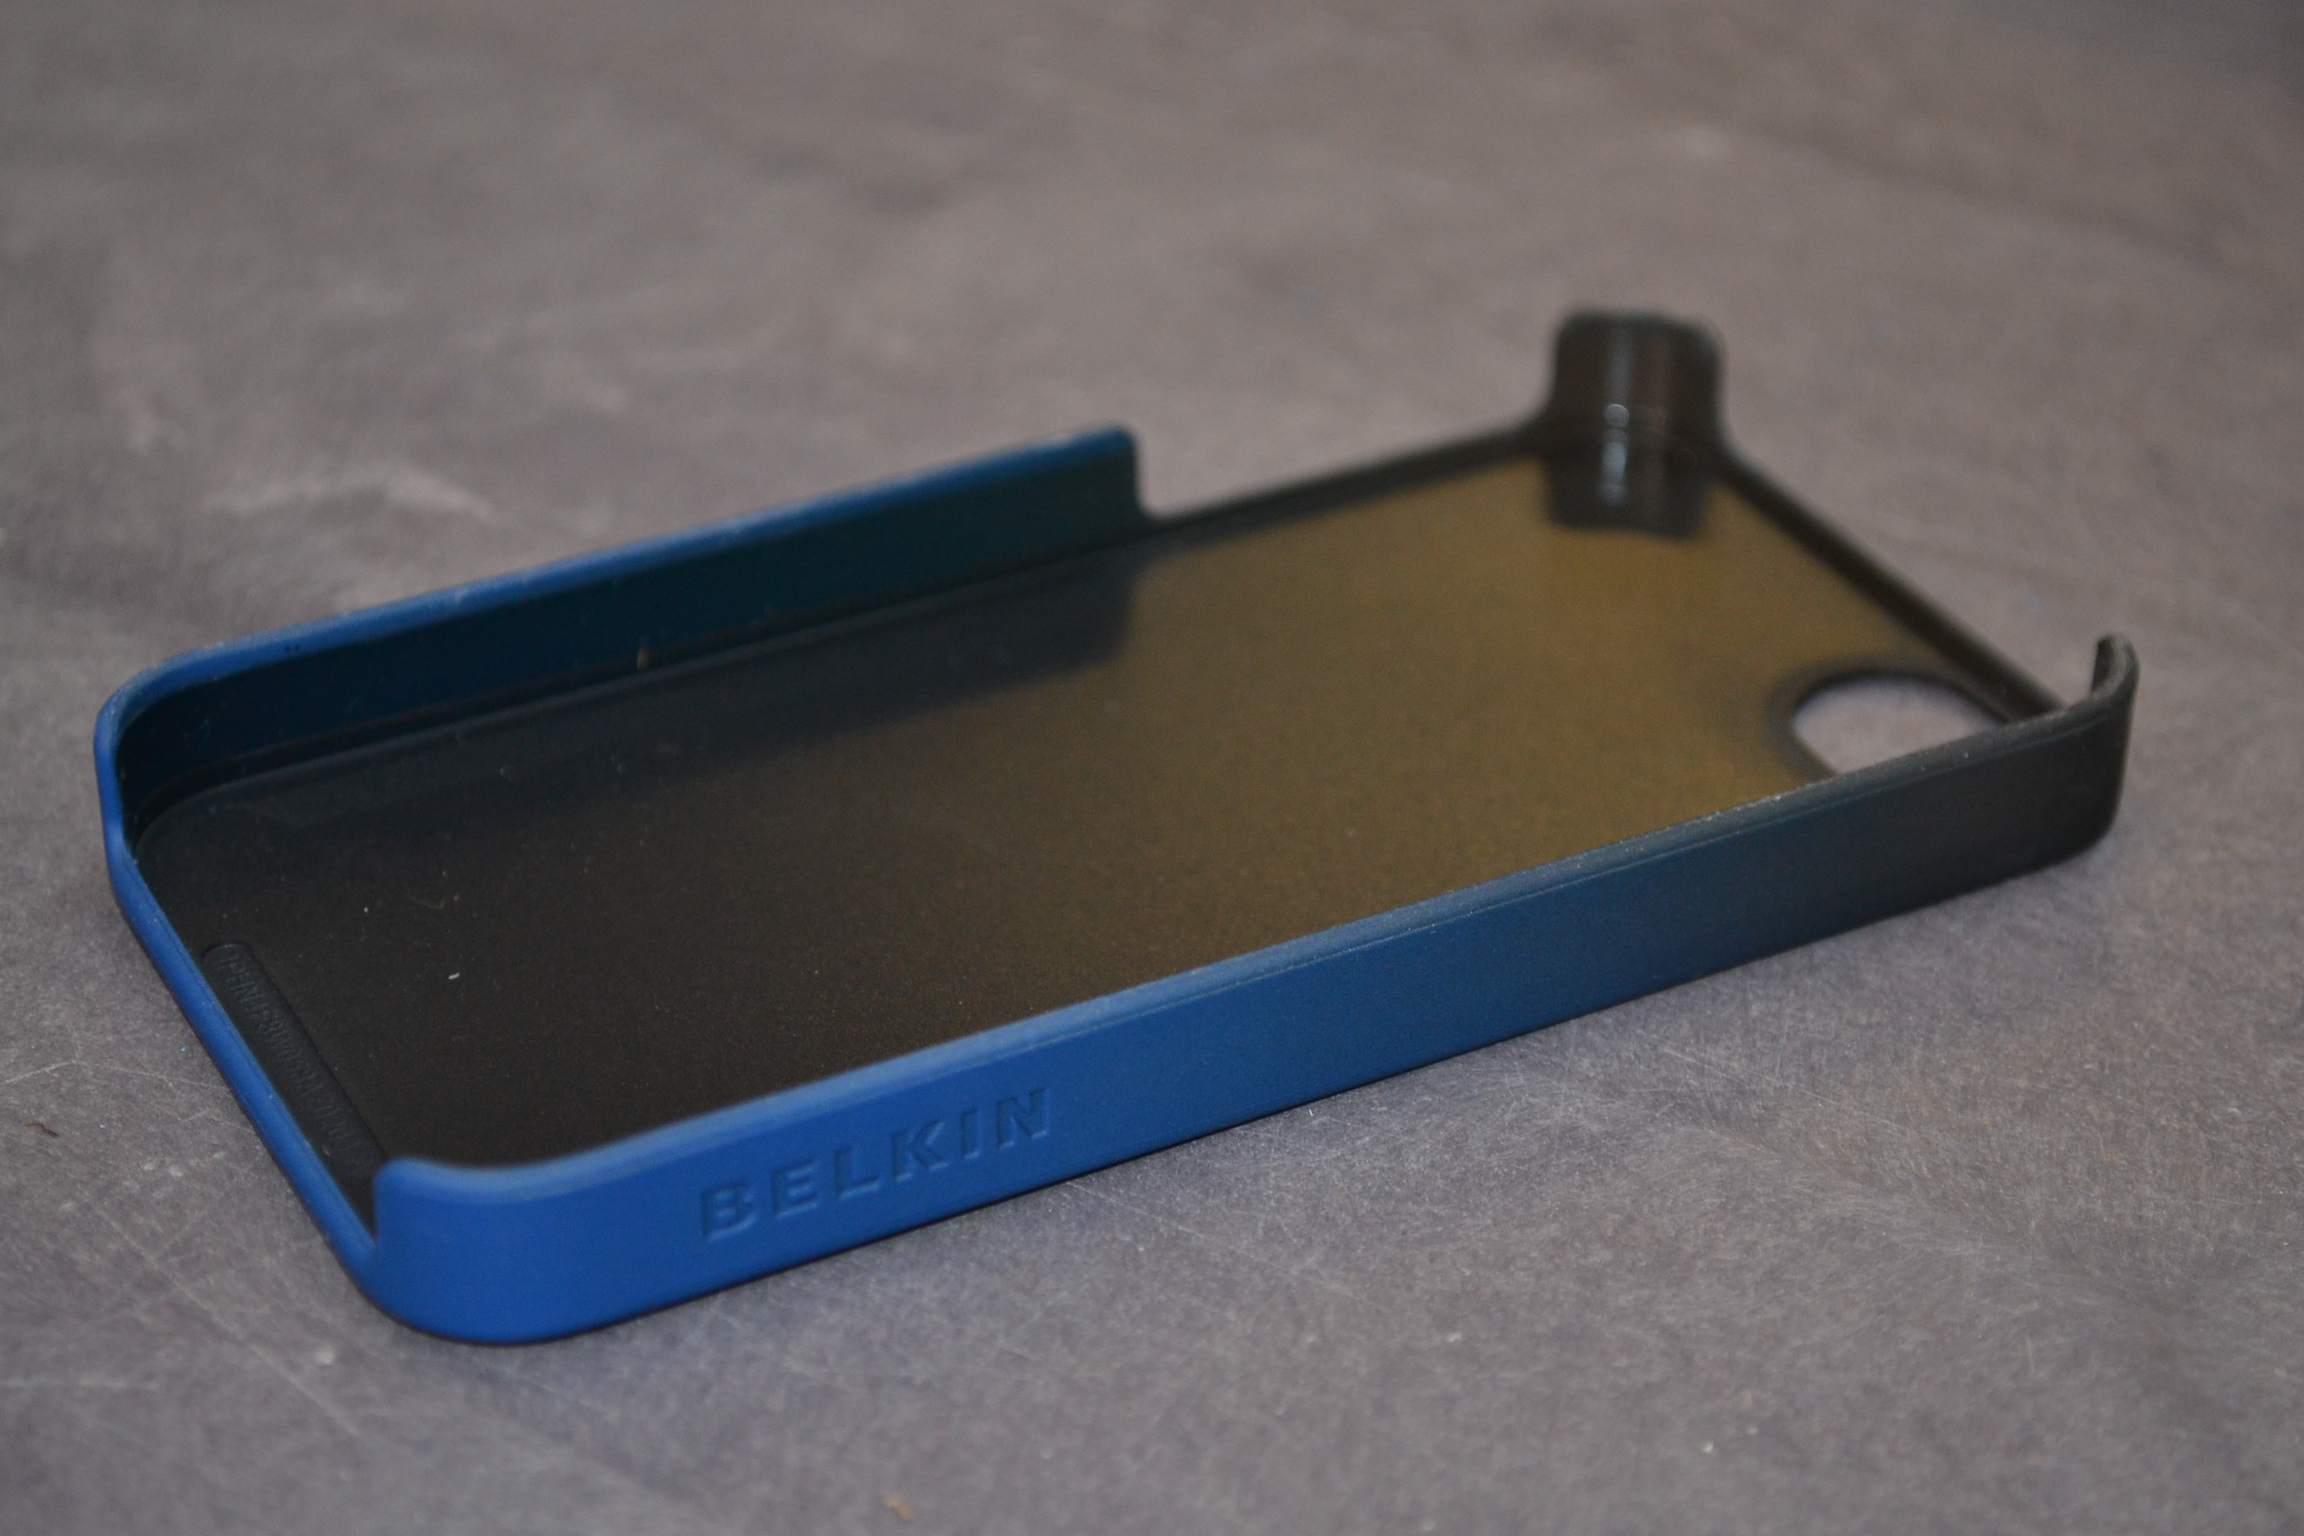 Image 2 of Belkin Fade Case For iPhone 4 4S Cover Blue Fitted